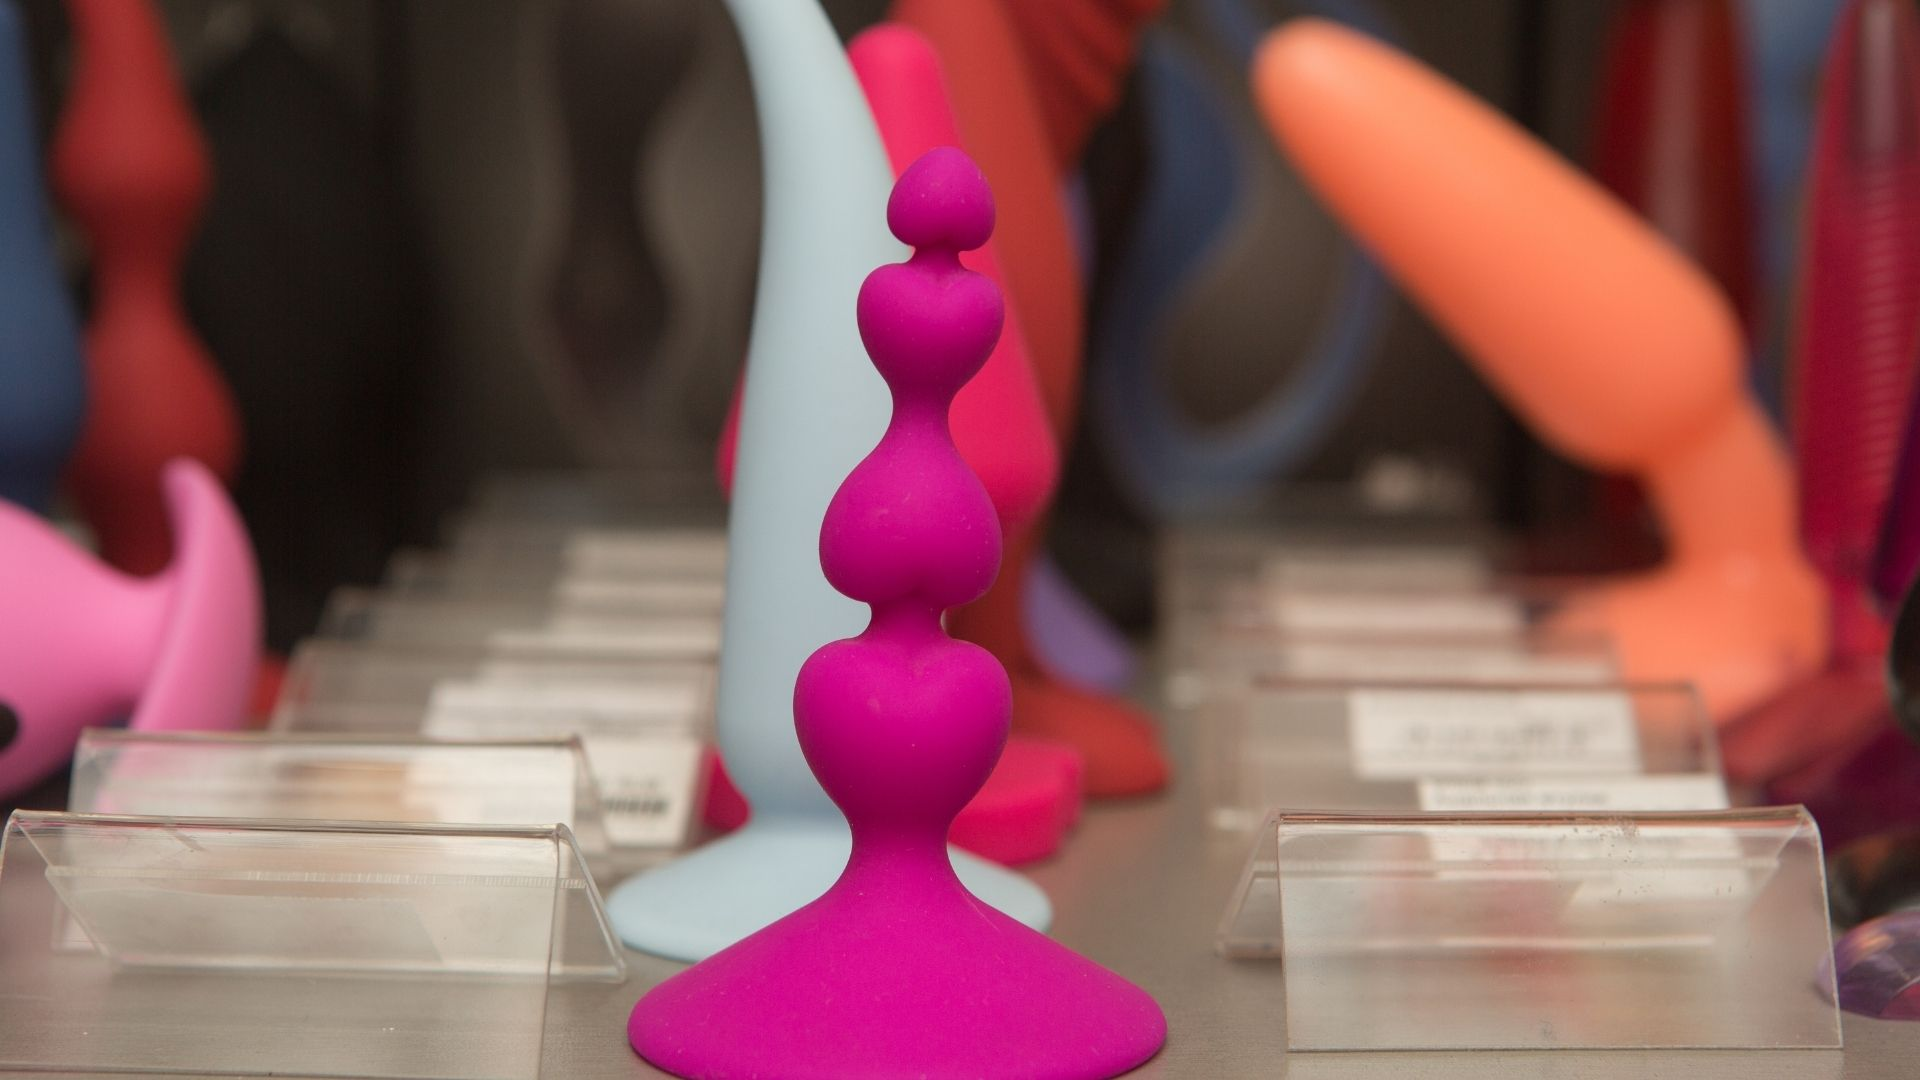 A window display of sex toys